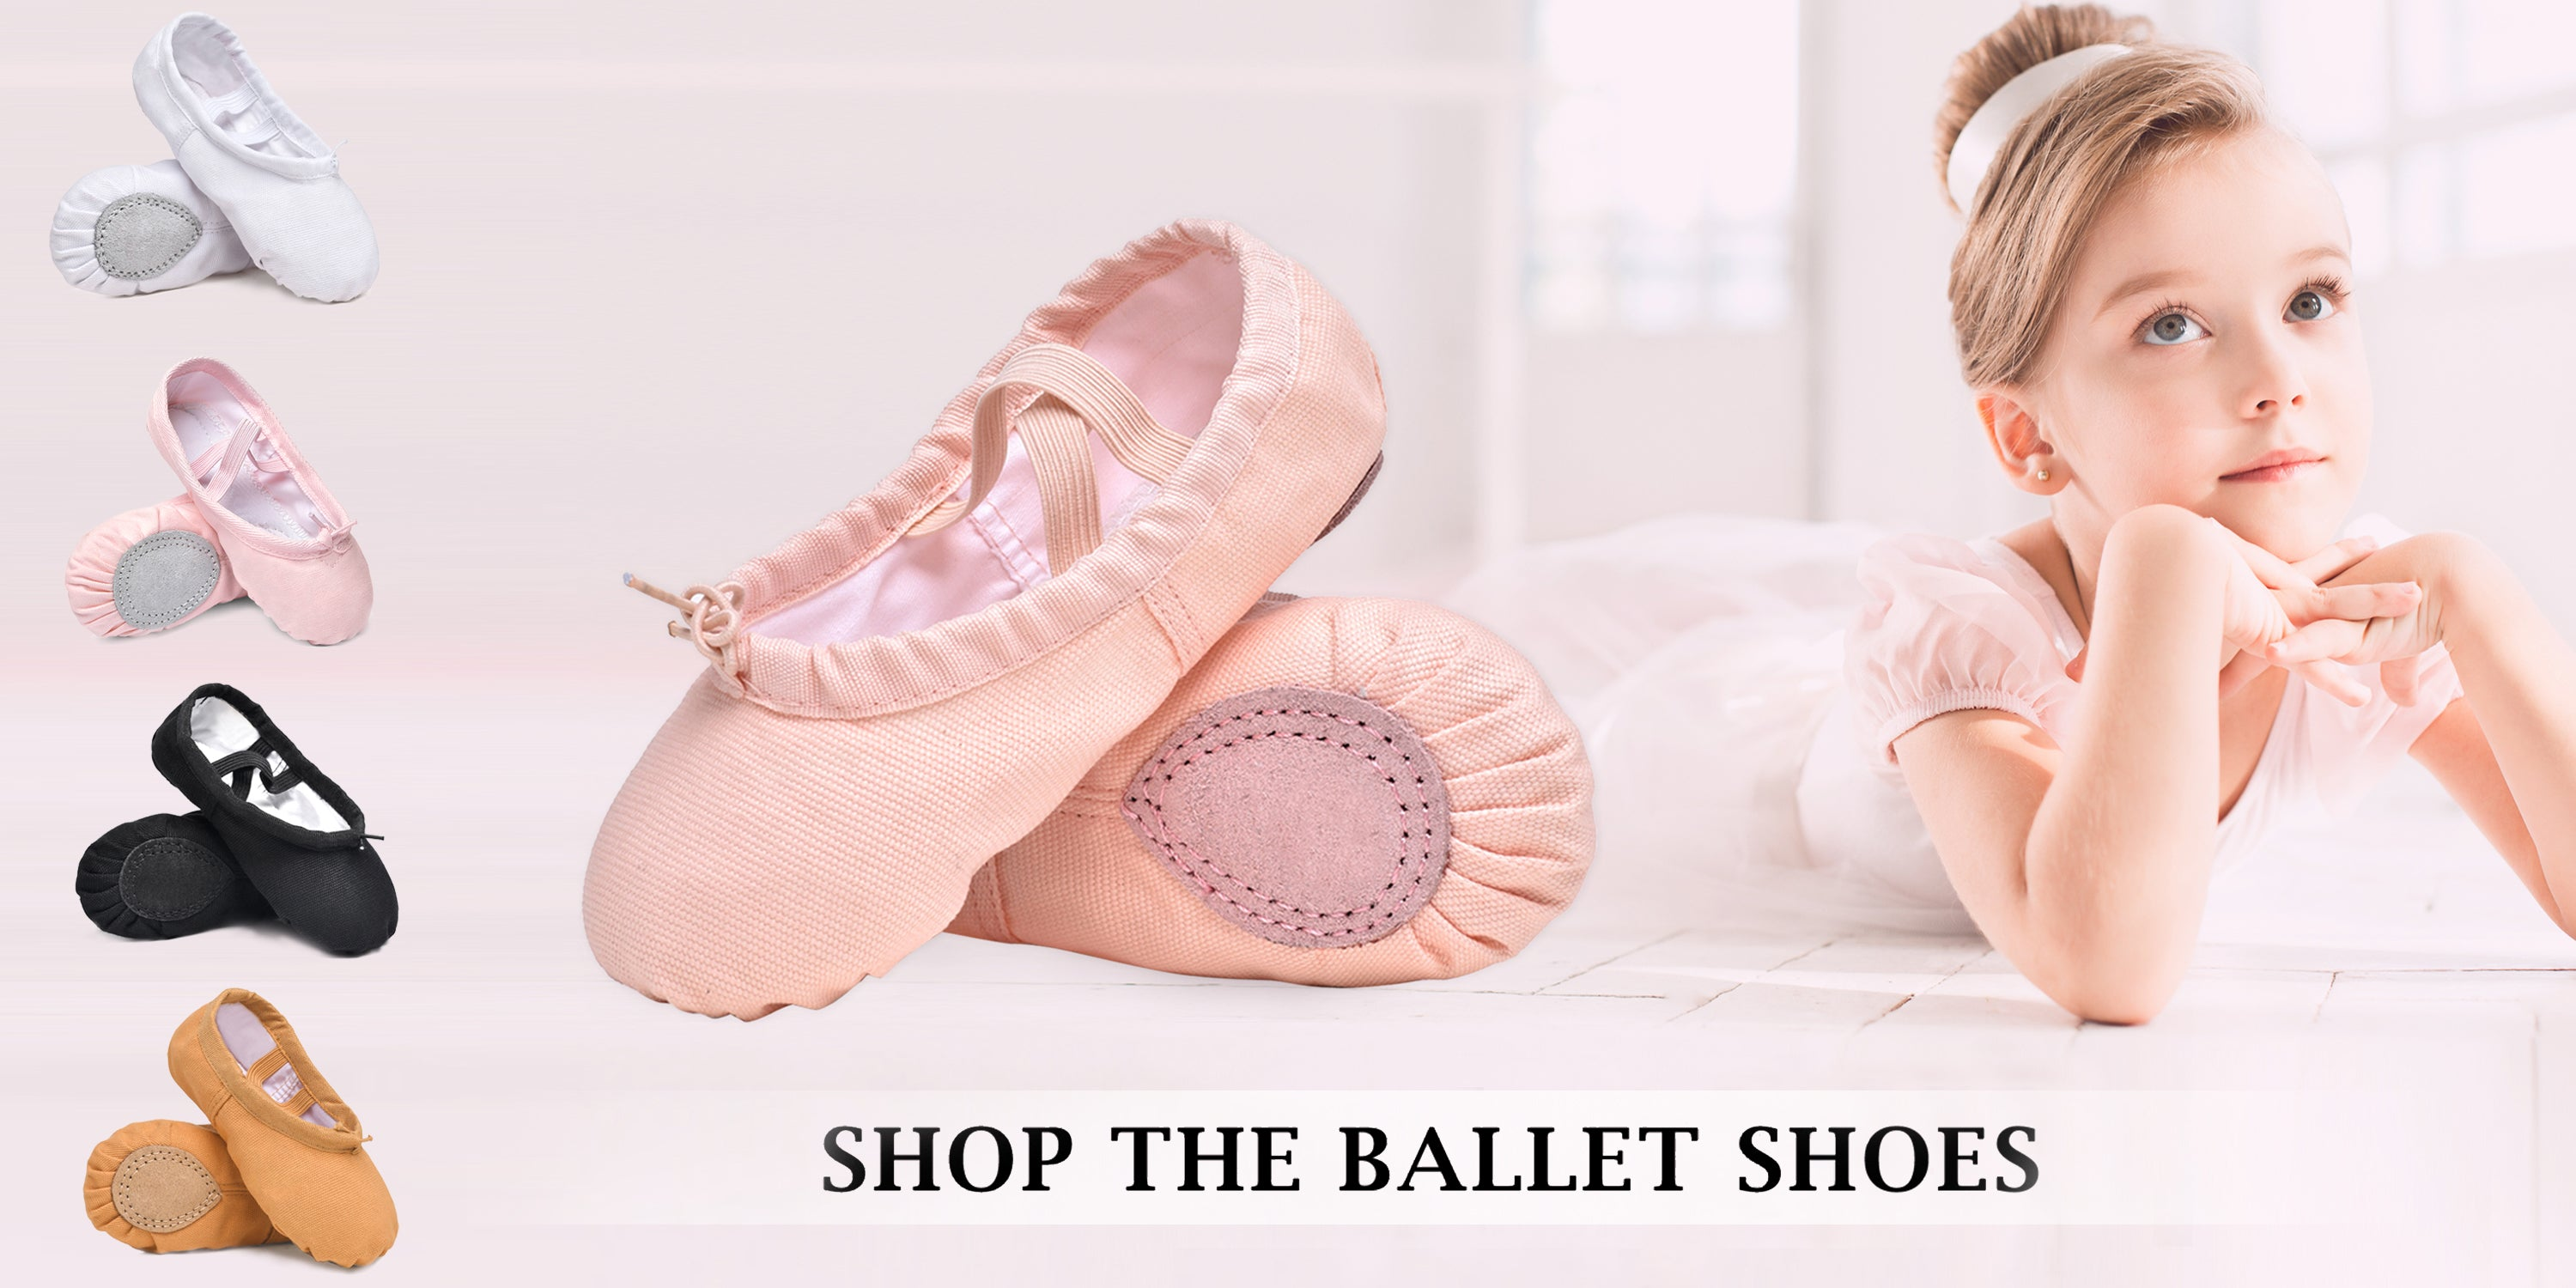 BALLET SHOES: A BUYING GUIDE